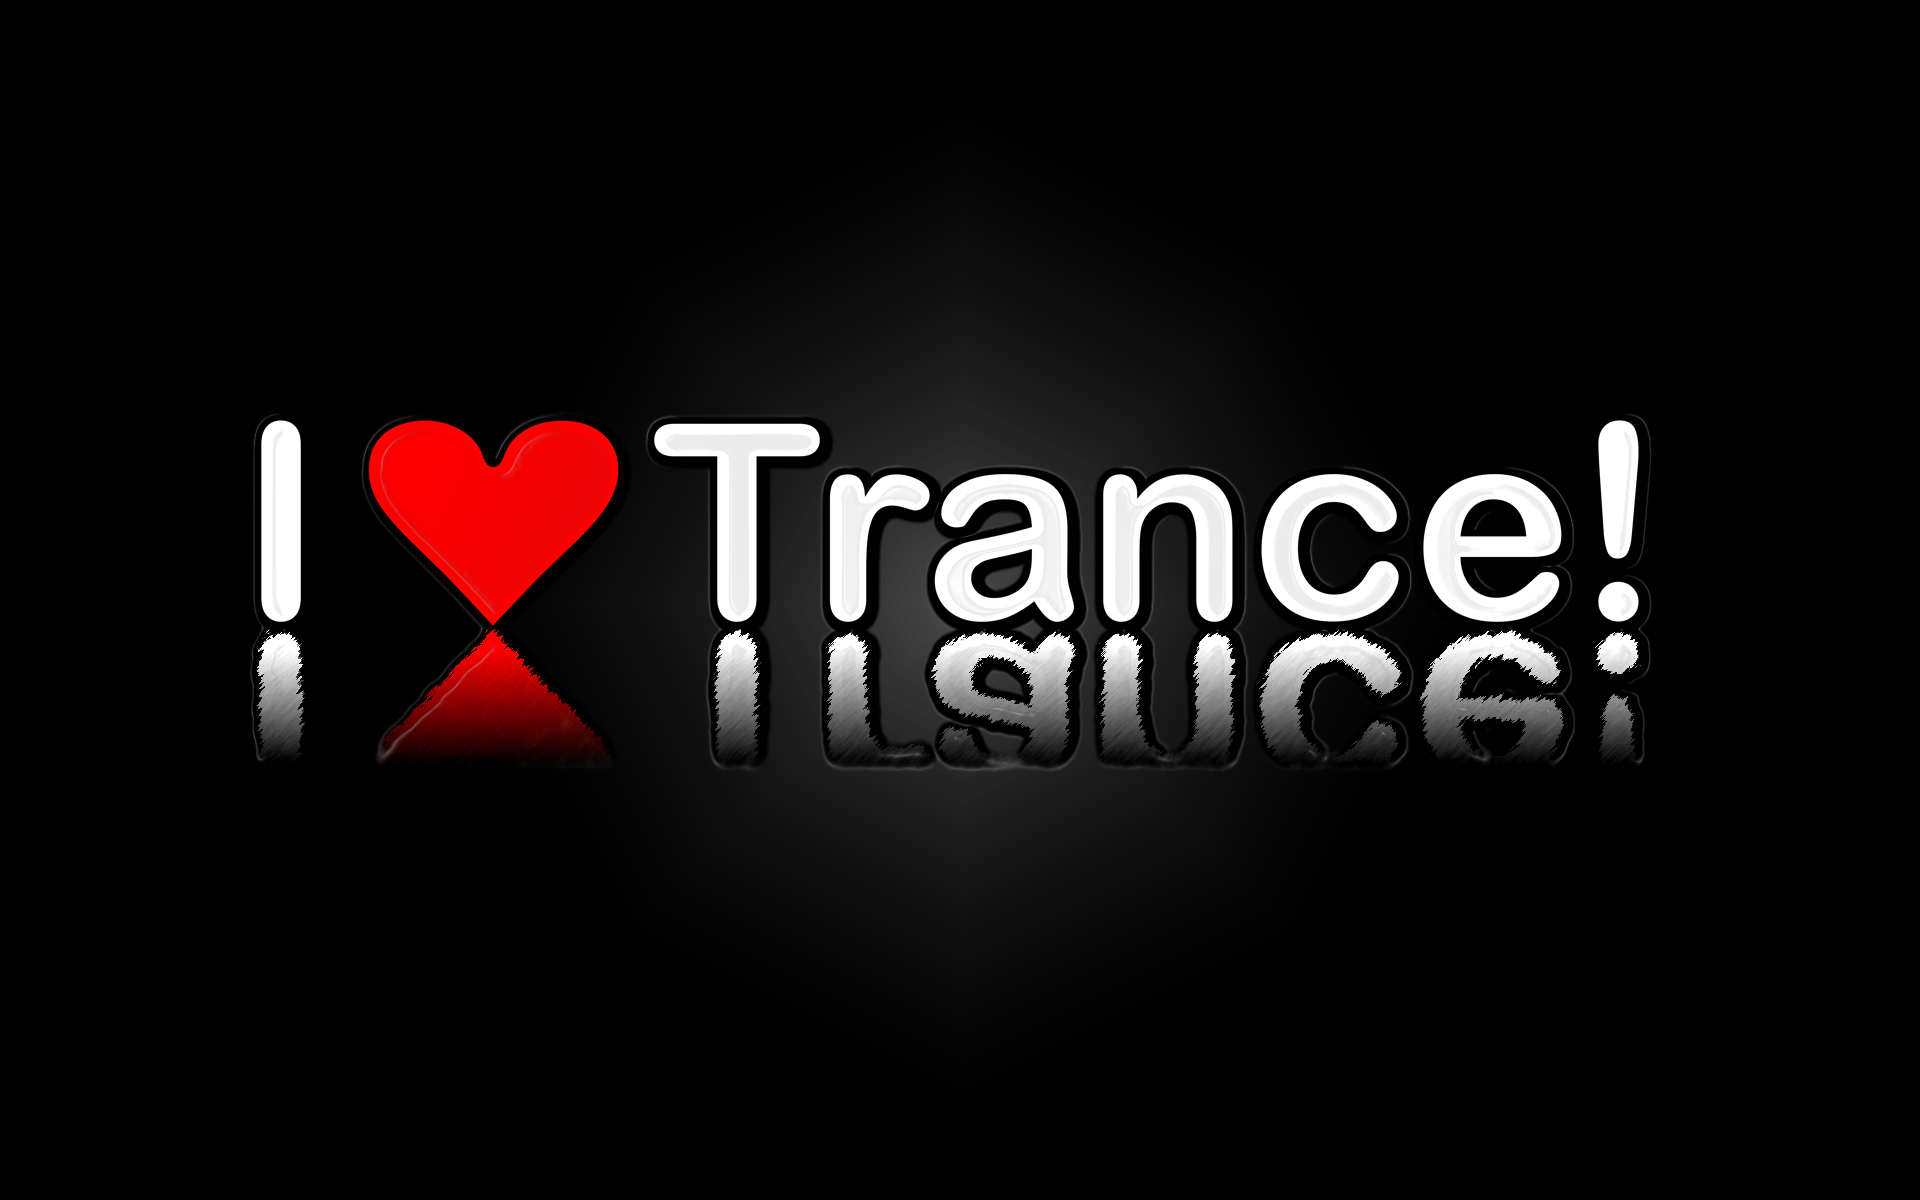 2011 TRANCE V A Trance The Best OF Different 320kbps ALBUM MP3 1920x1200